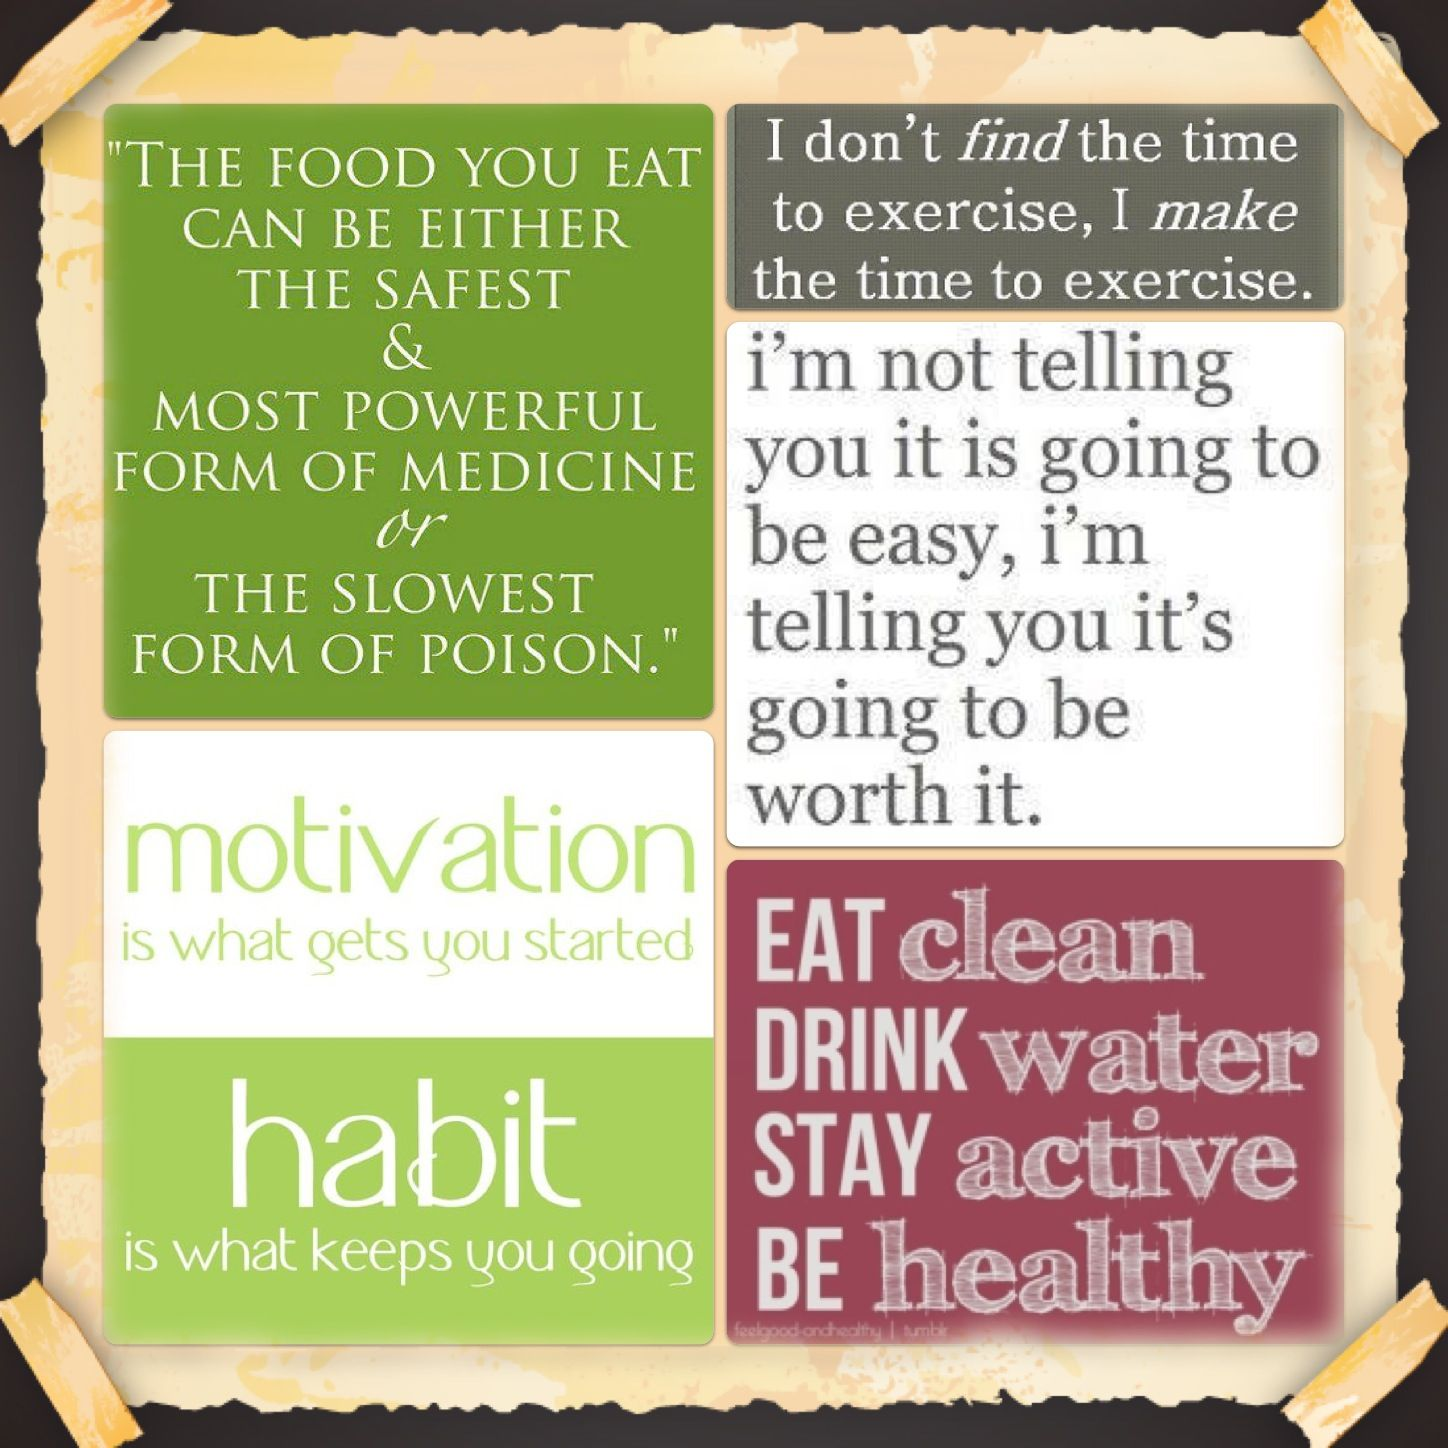 Inspirational Quotes About Health: Motivation Is What Gets You Started...Habit Is What Keeps